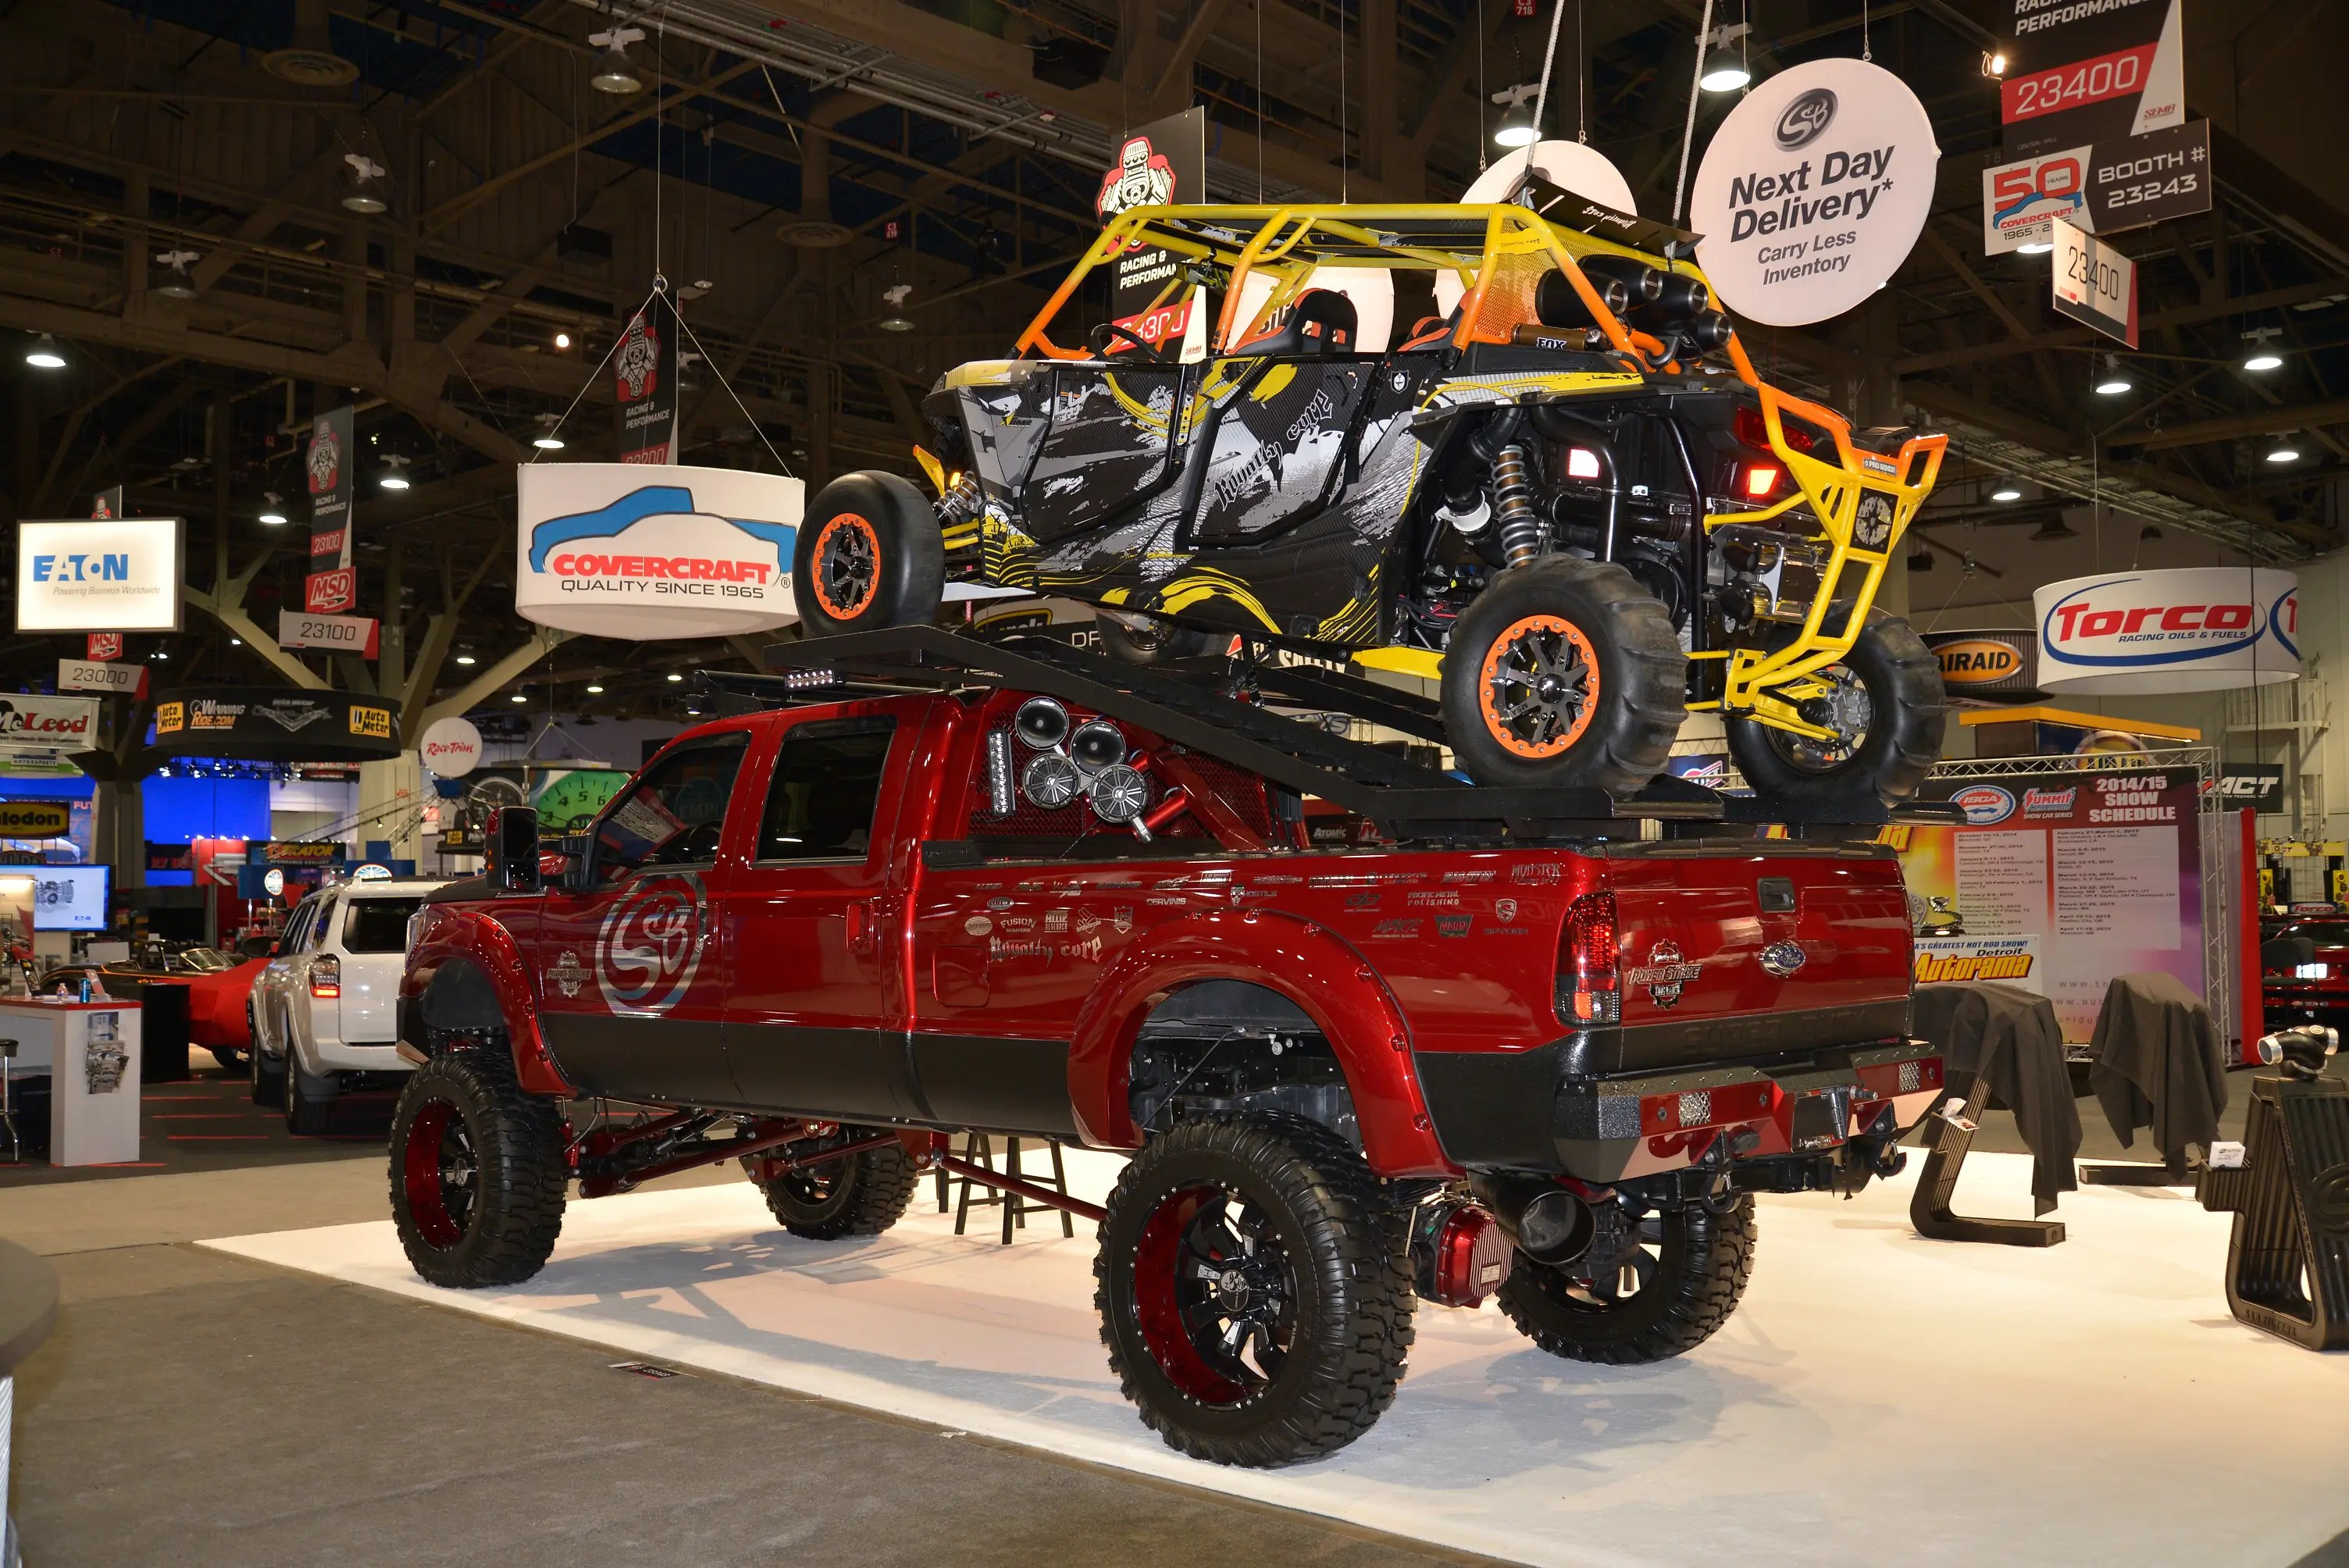 This impressive F-Series has a dune buggy mounted over its truck bed.